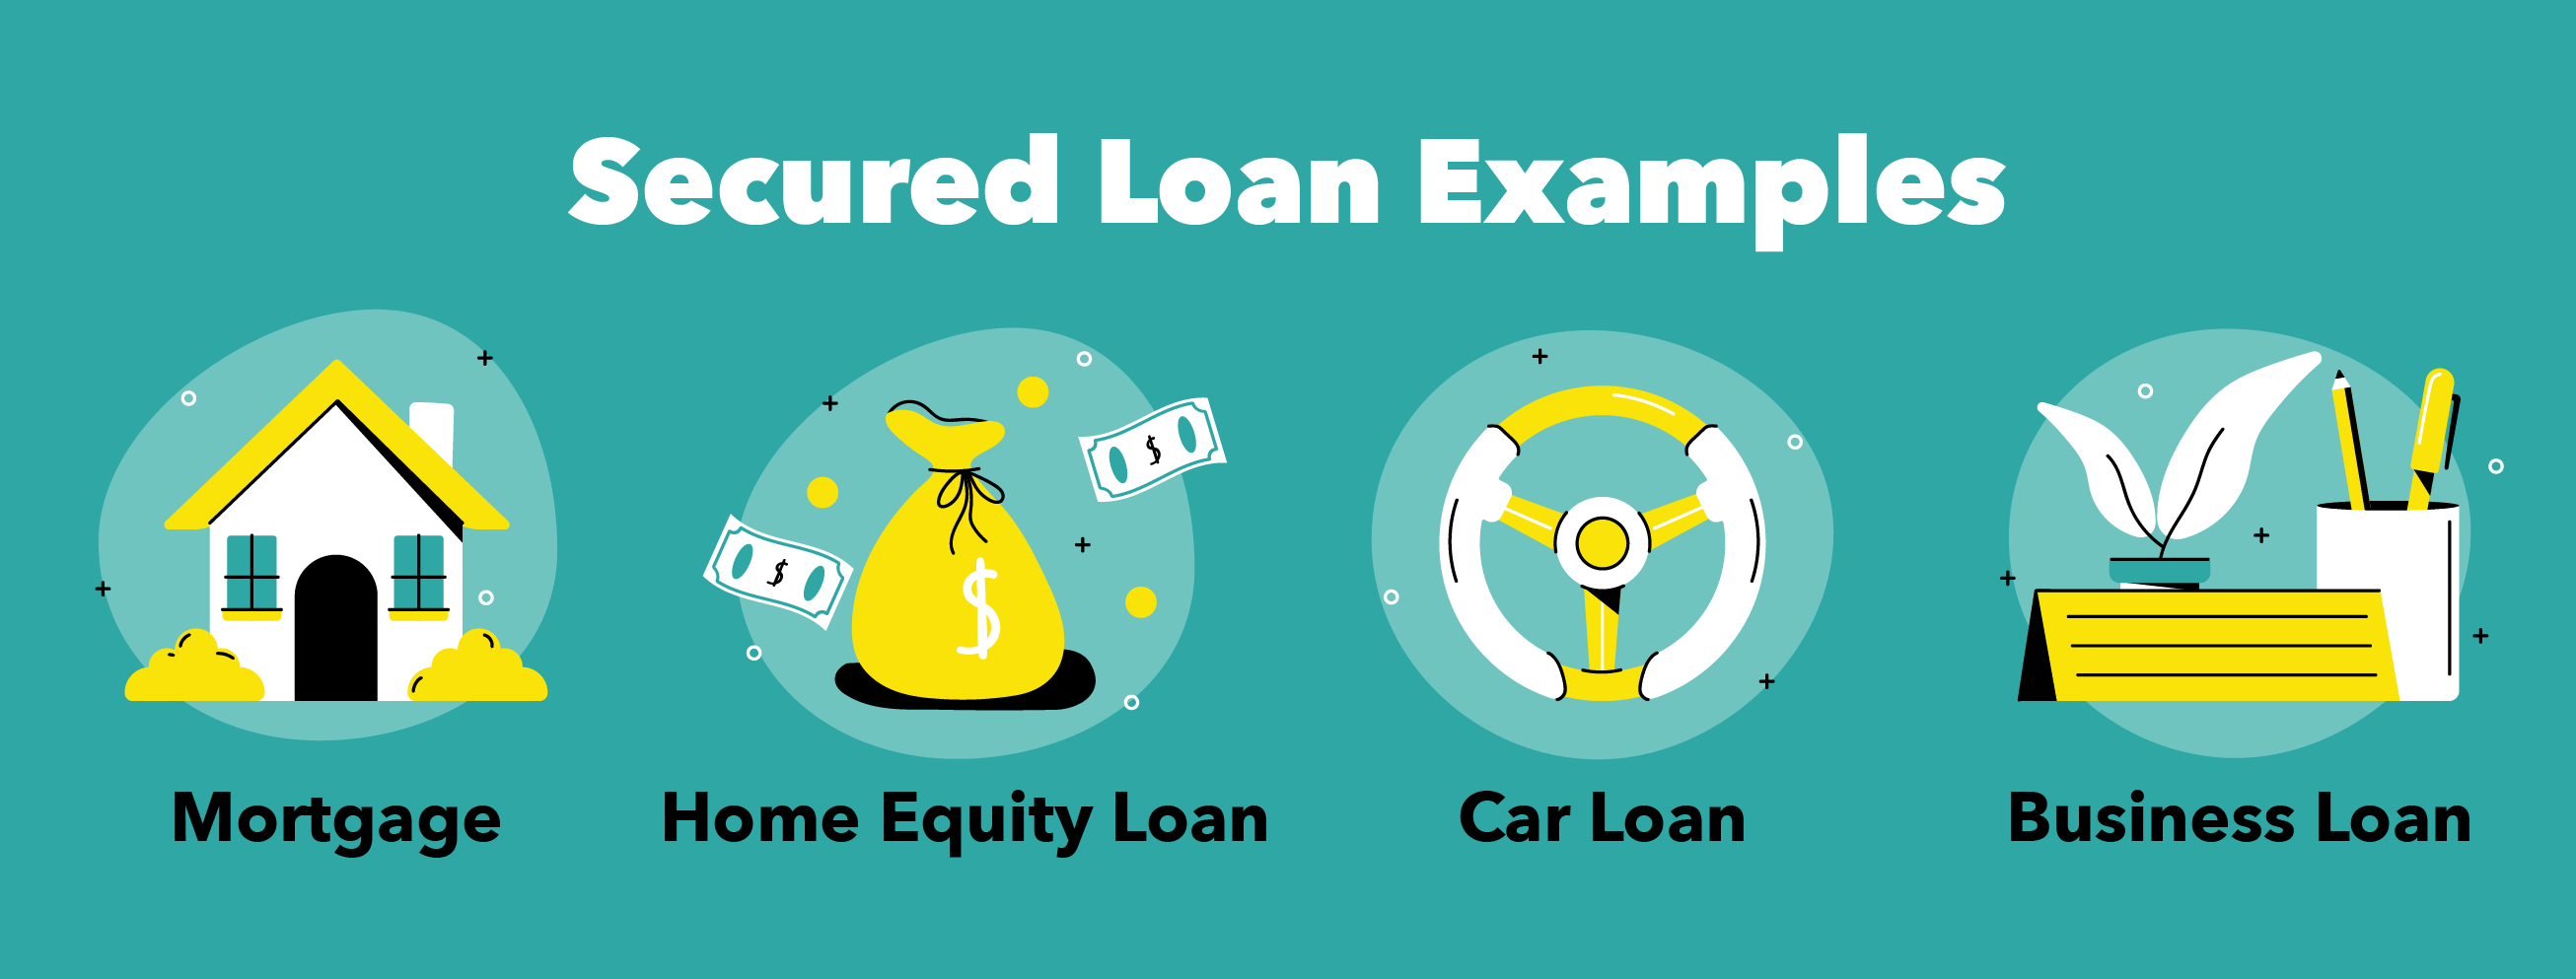 Secured vs. Unsecured Loans: Here's the Difference